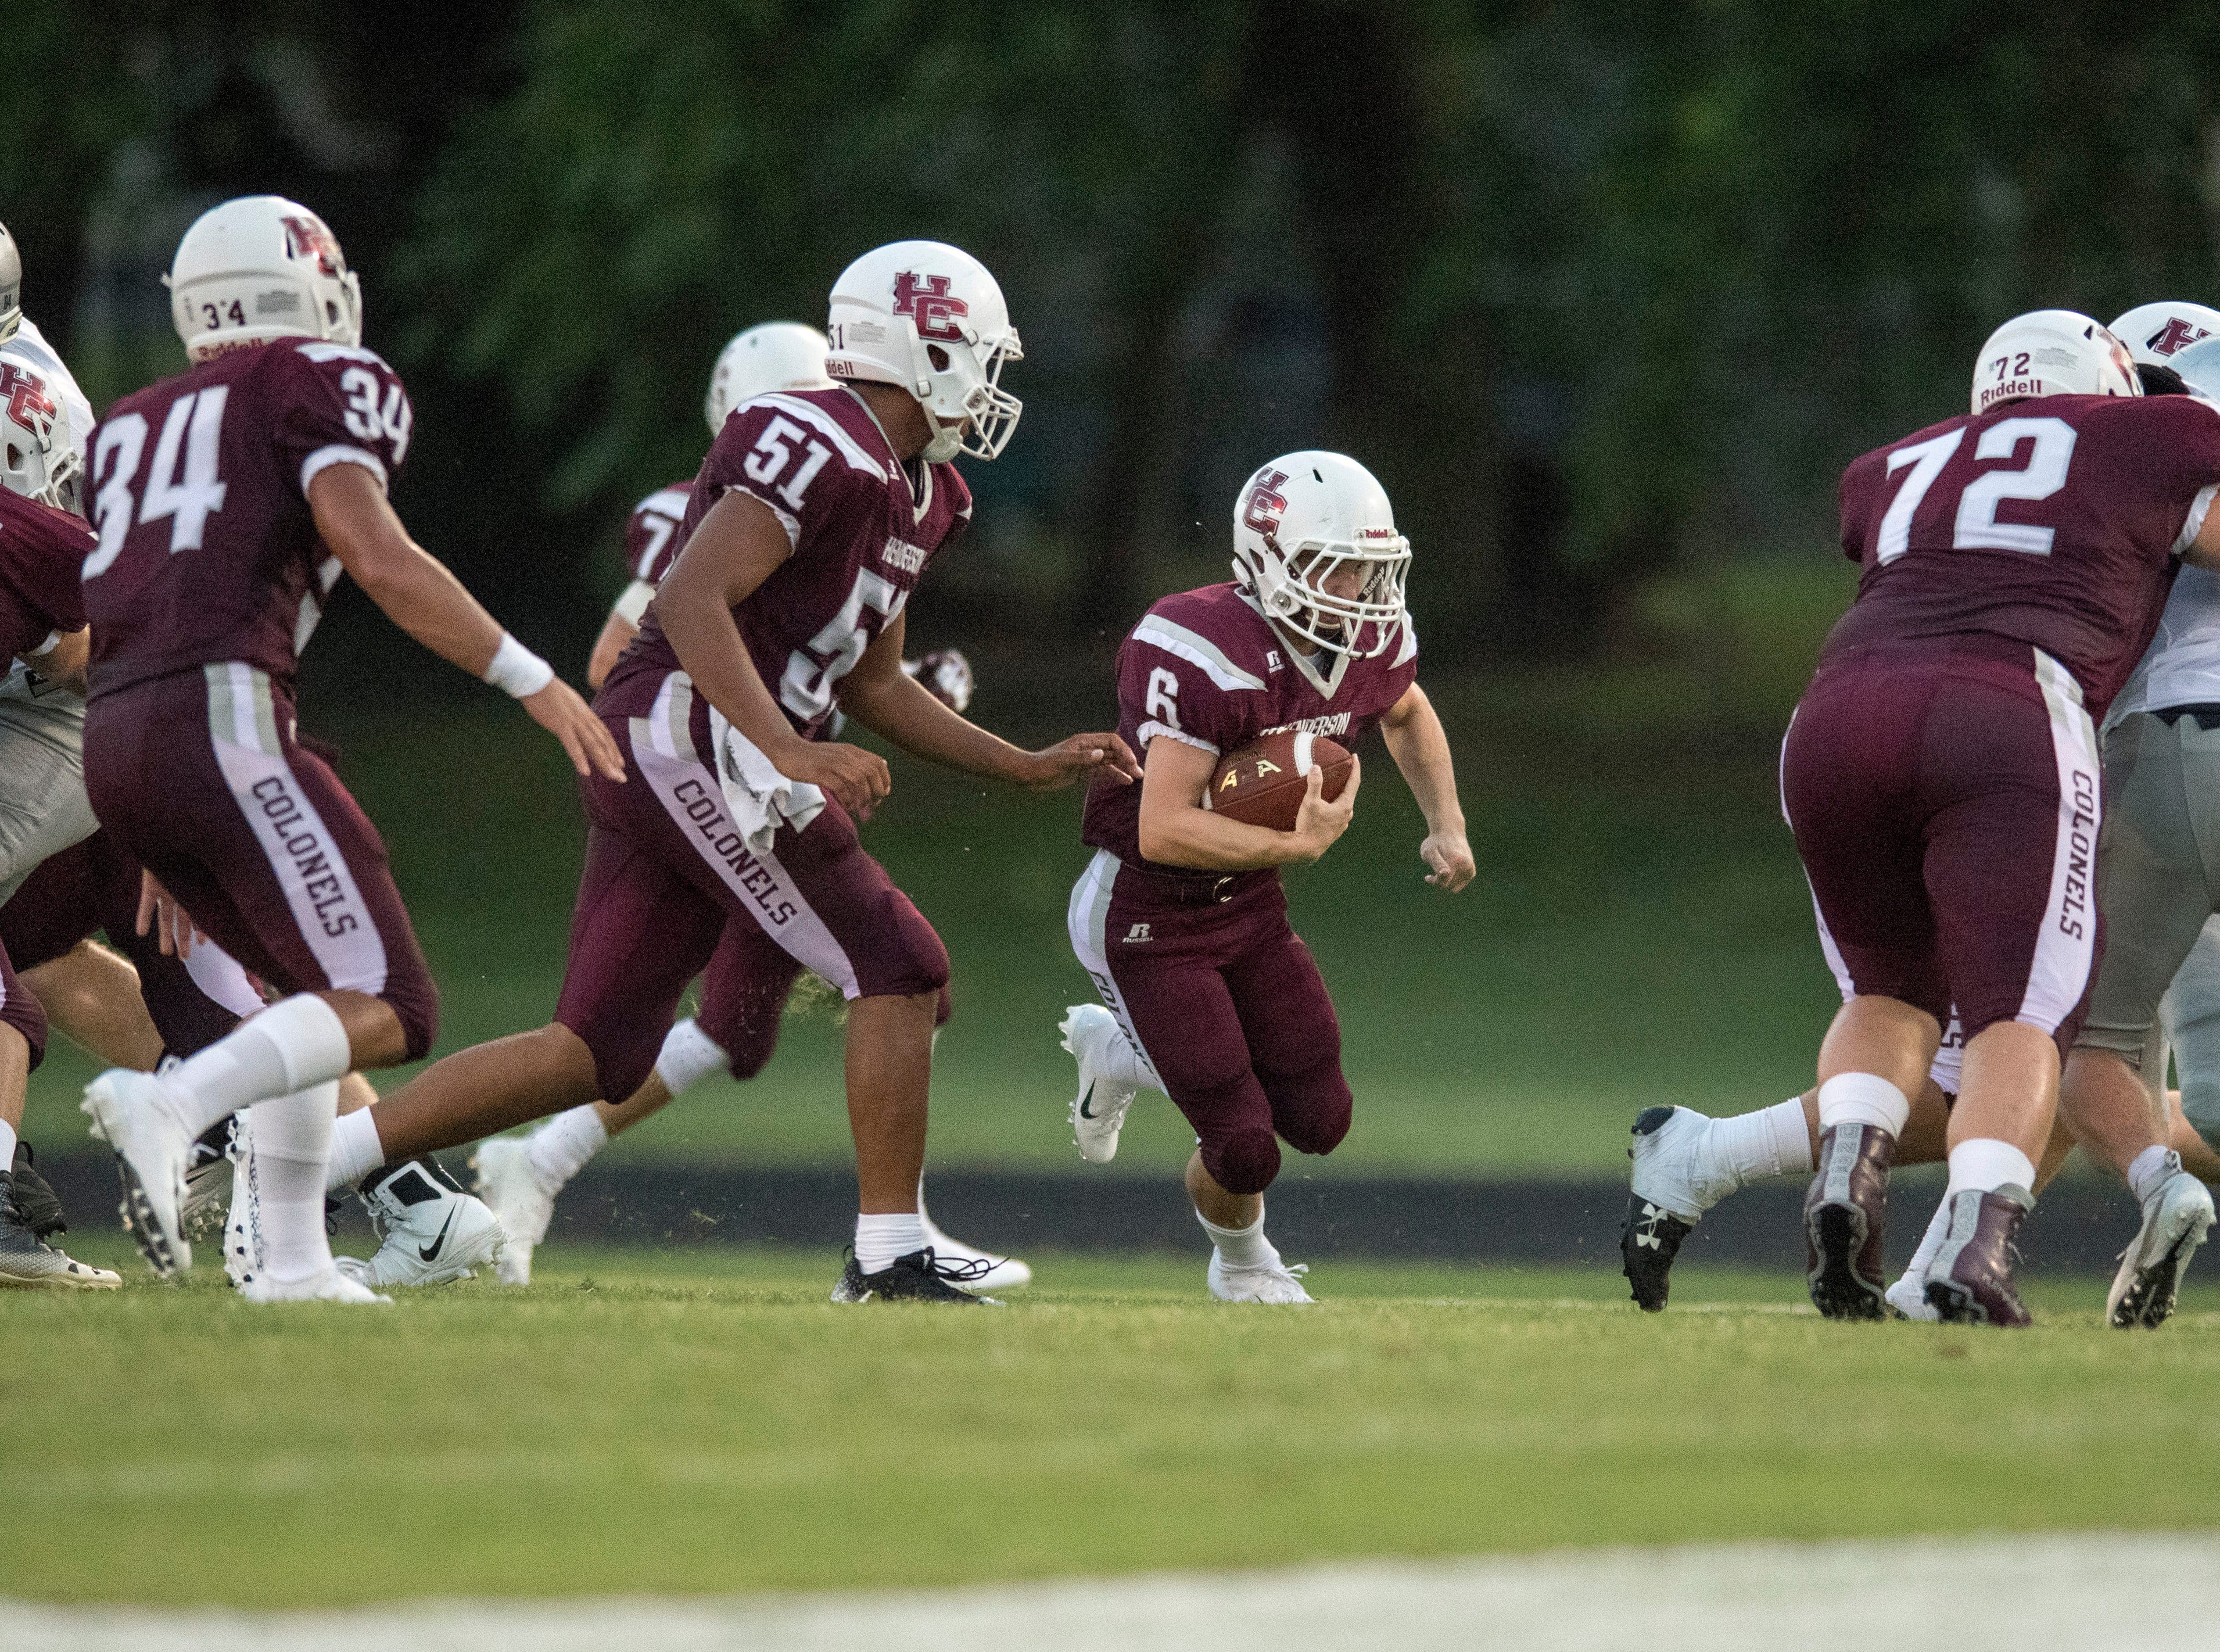 HendersonÕs Logan Green (6)  looks for an open lane during the Reitz vs Henderson County game at Colonel Stadium Friday, August 17, 2018. The Panthers defeated the Colonels 41-35 in the season opening game.